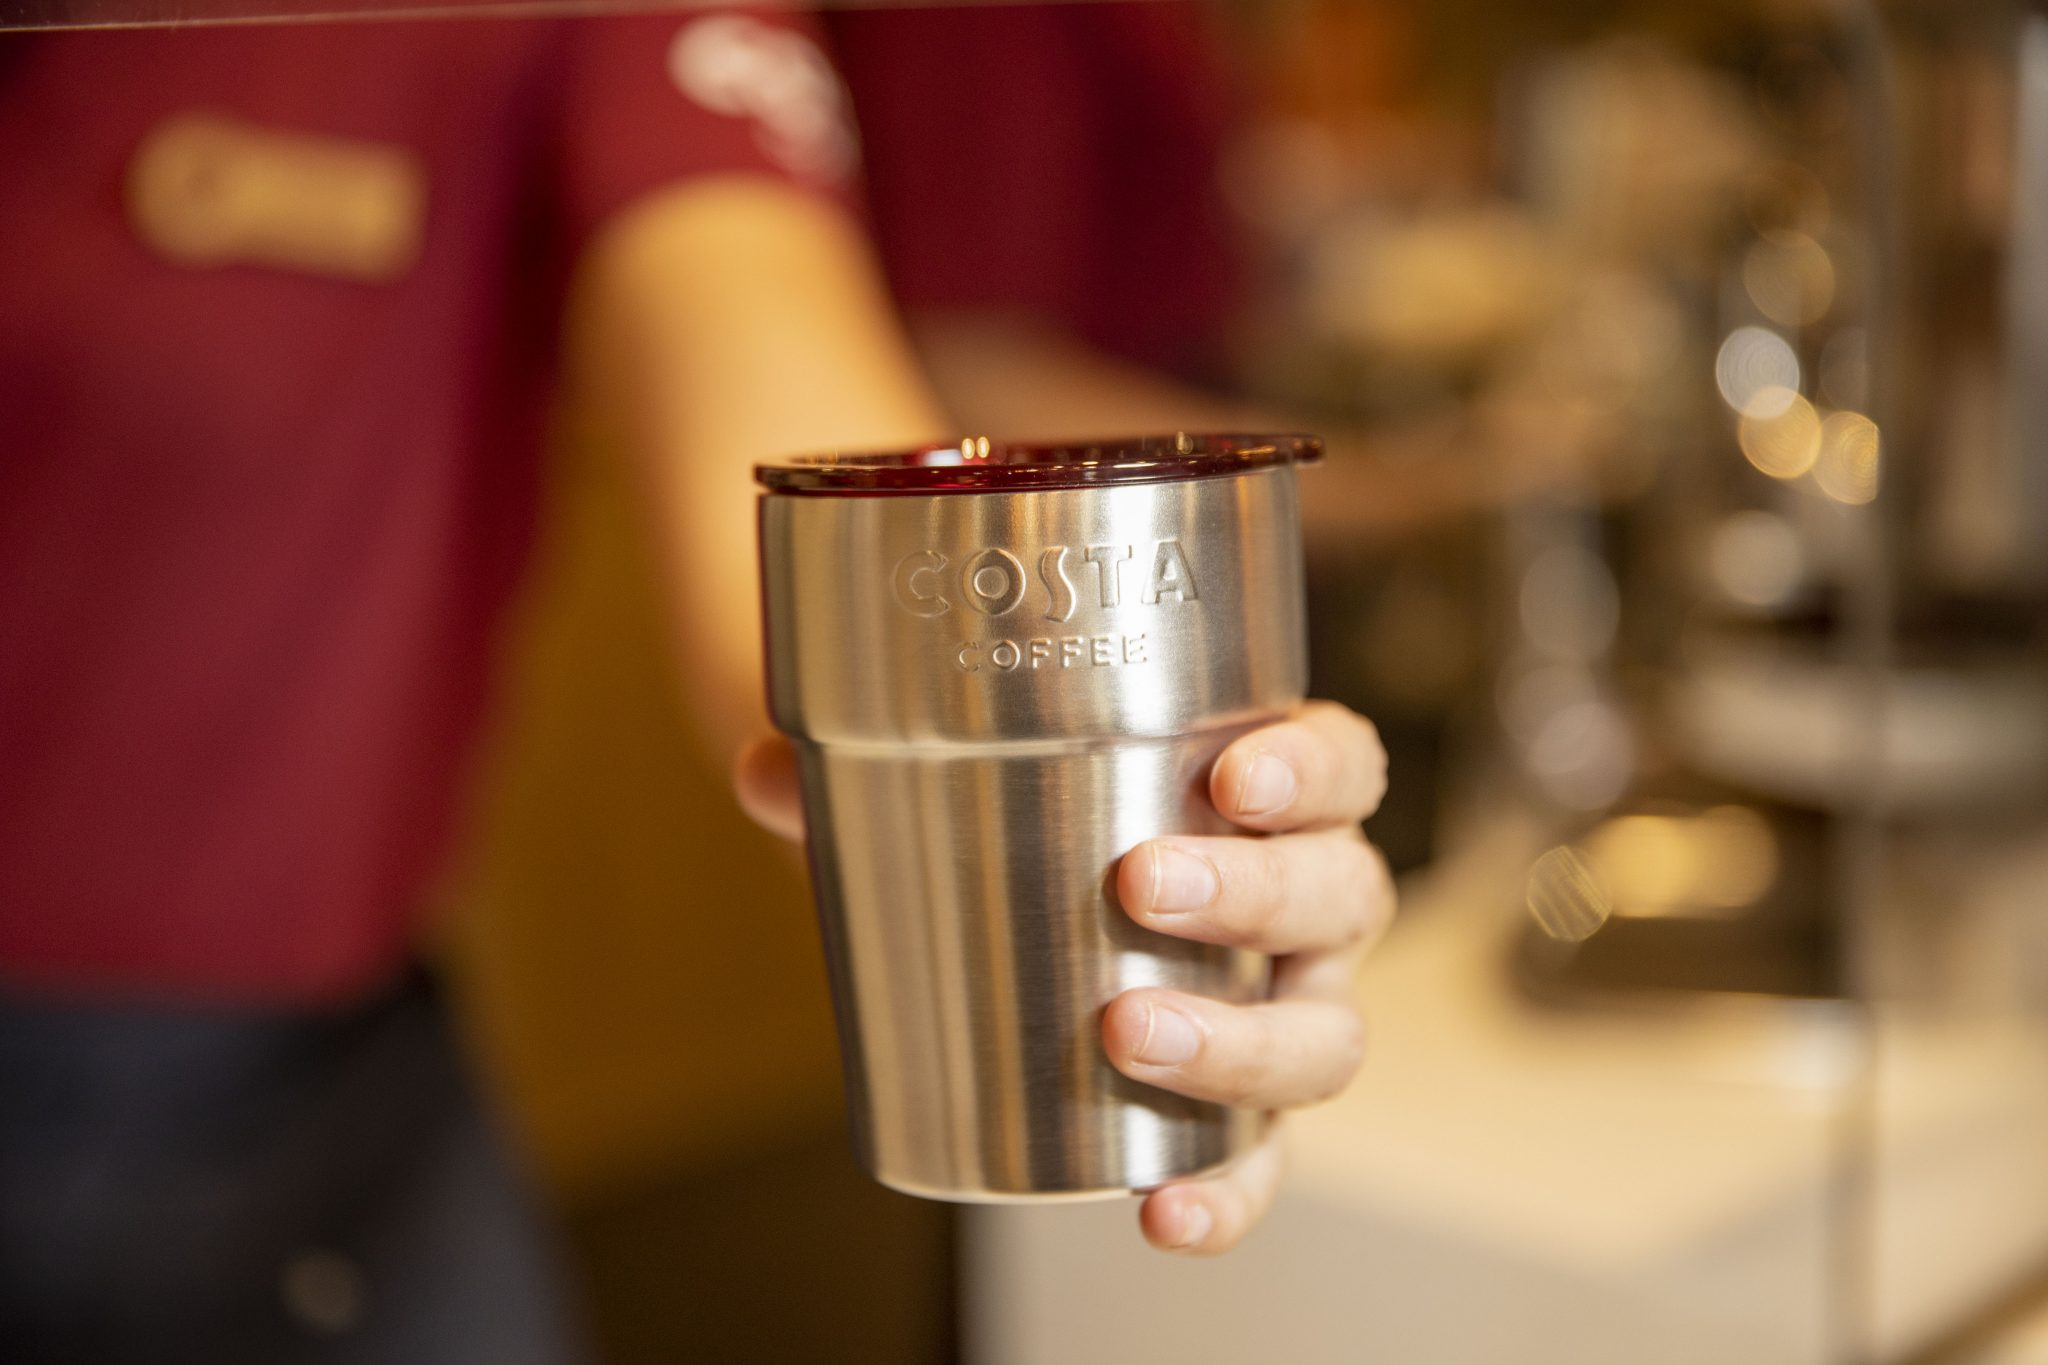 BURT is the new reusable cup scheme from Costa Coffee